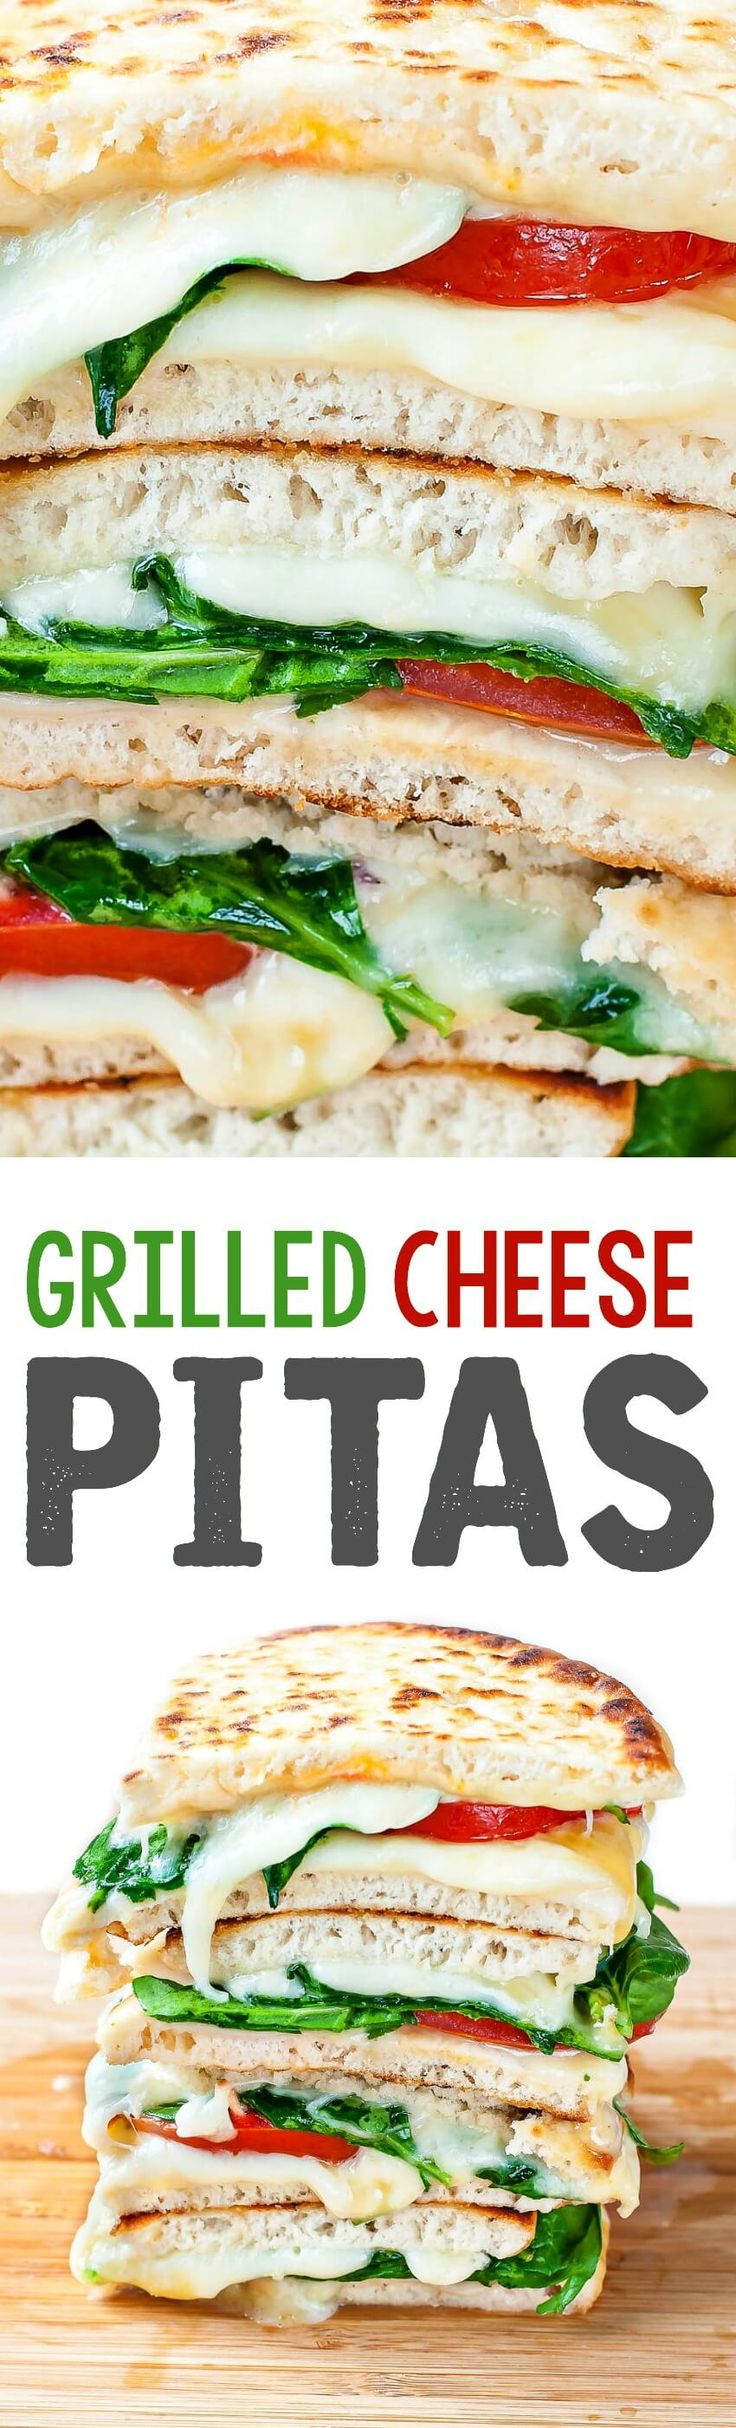 These Spinach and Tomato Grilled Cheese Pitas jazz up the typical grilled cheese sandwich. Dunk them in your favorite soup or face-plant into them all on their own for a quick and easy lunch that's a